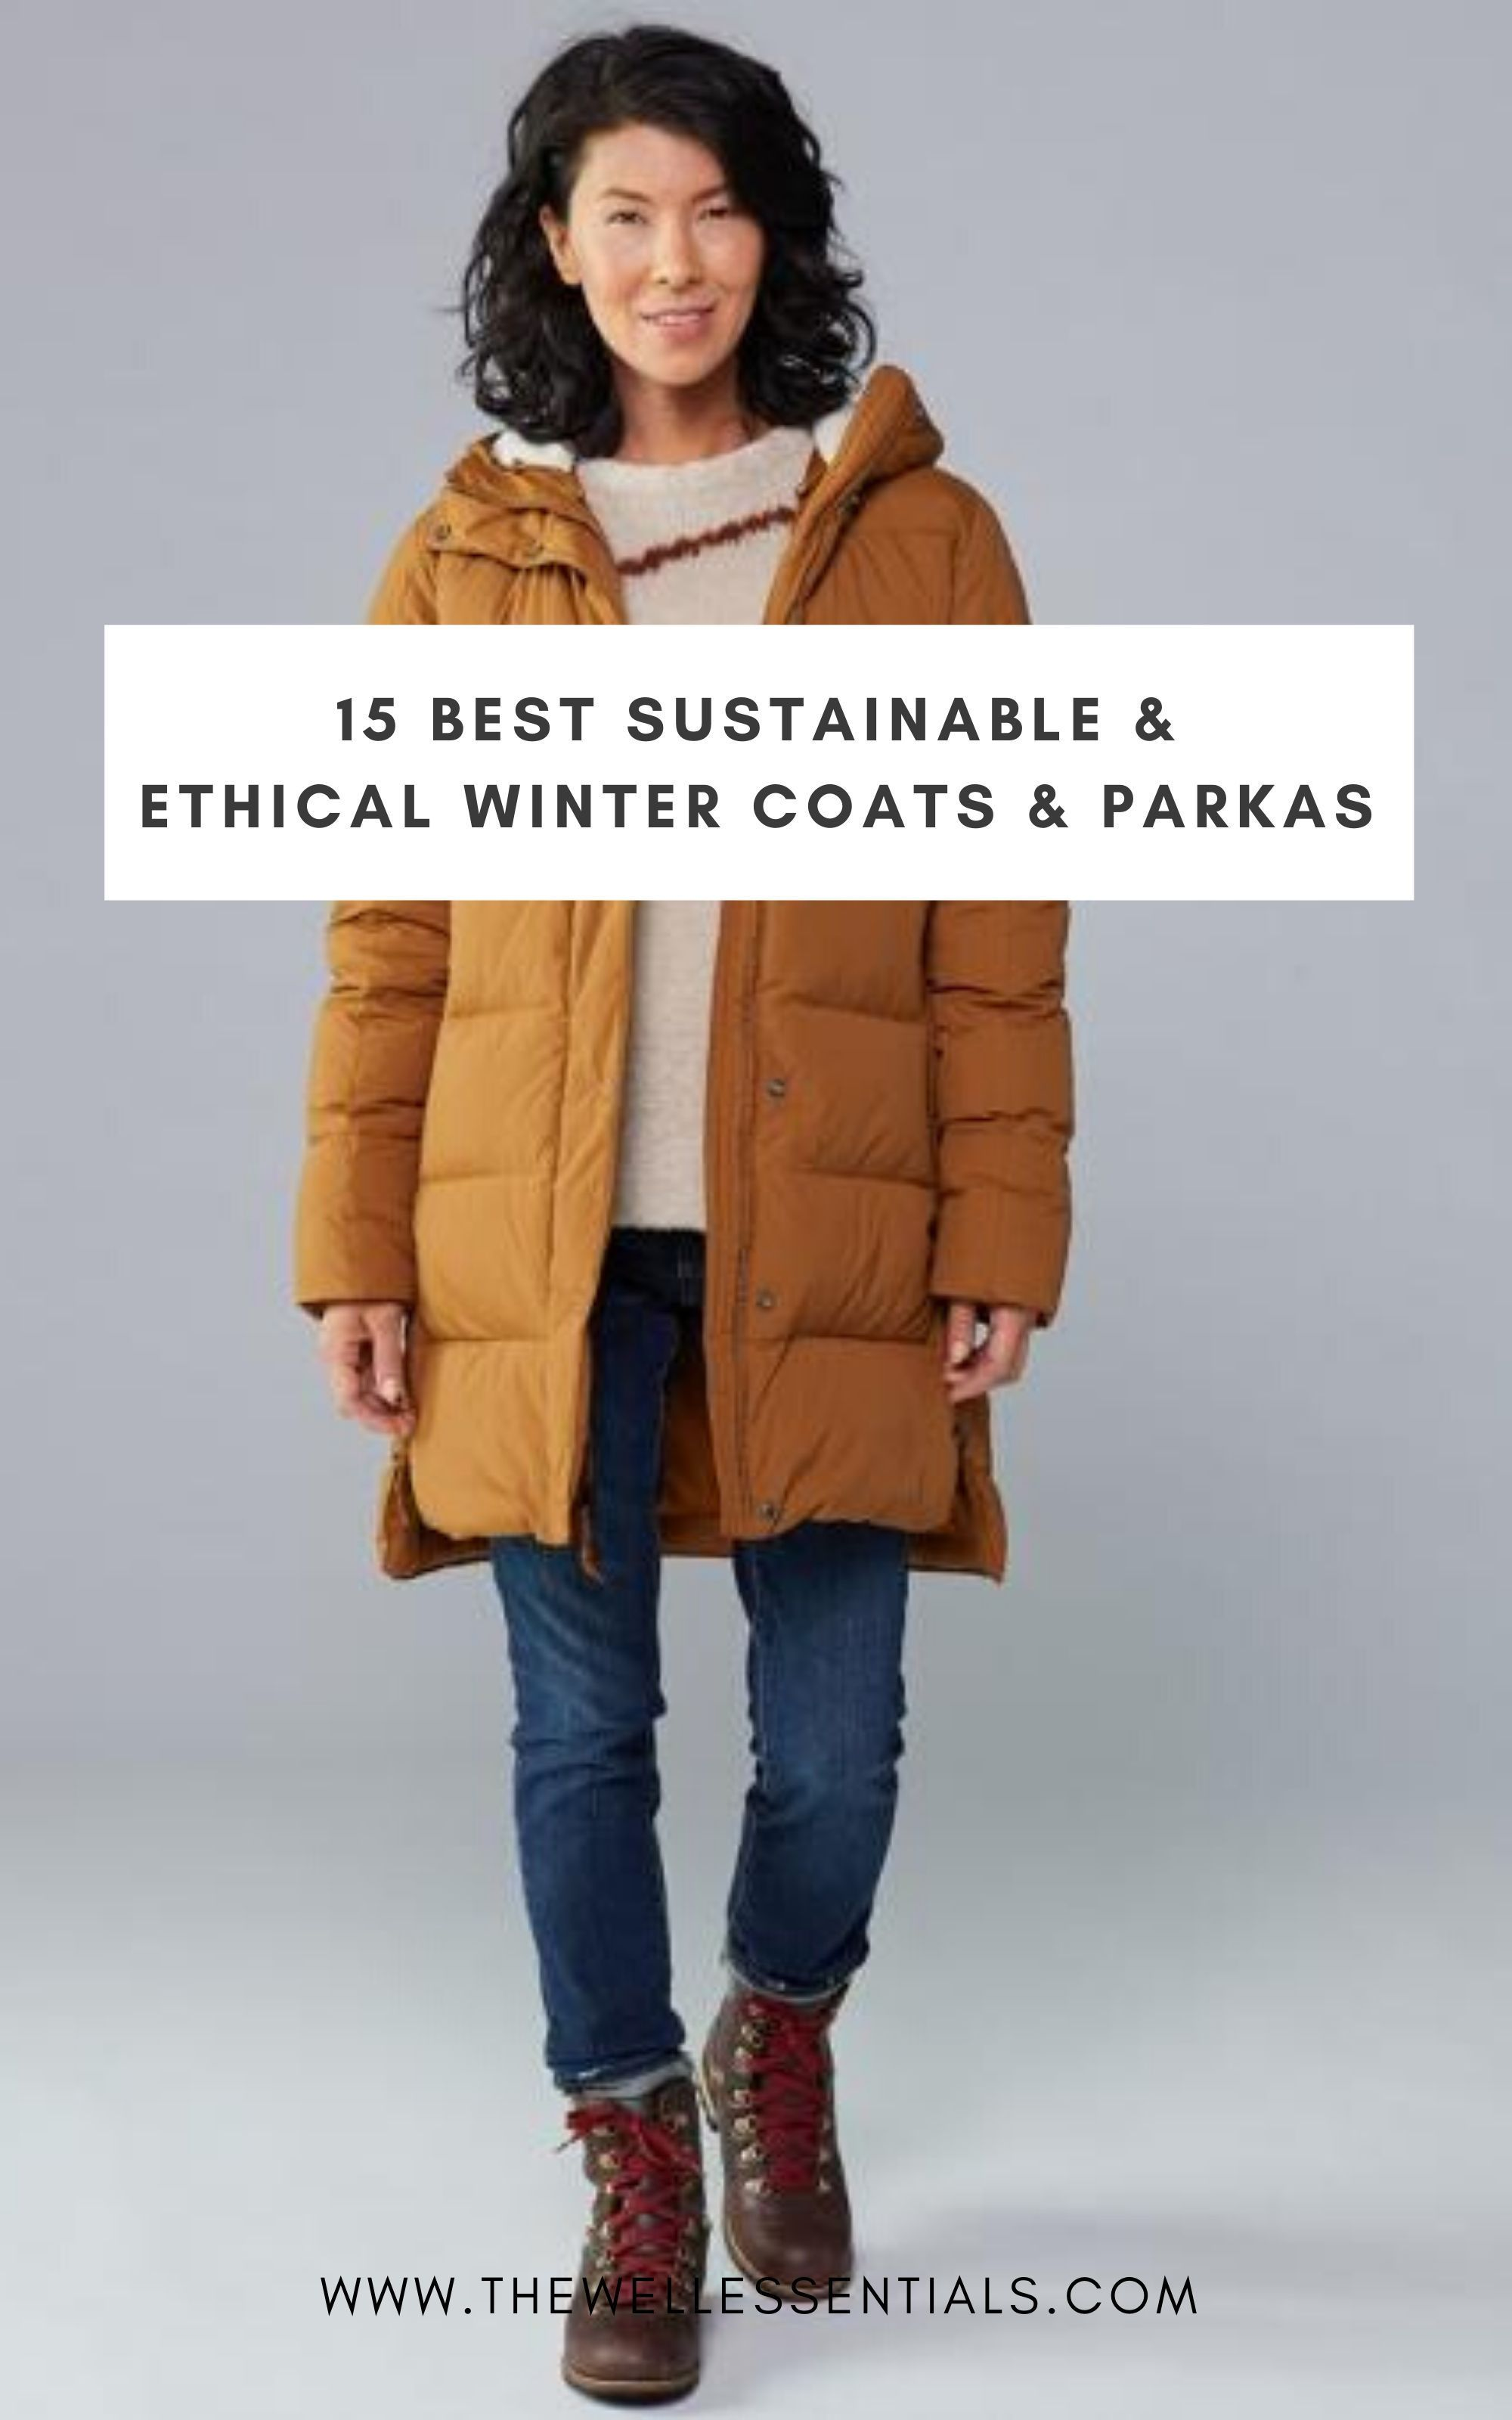 15 Best Sustainable And Ethical Winter Coats And Jackets To Keep You Warm Winter Coat Parka Best Winter Coats Winter Coat [ 3200 x 2000 Pixel ]